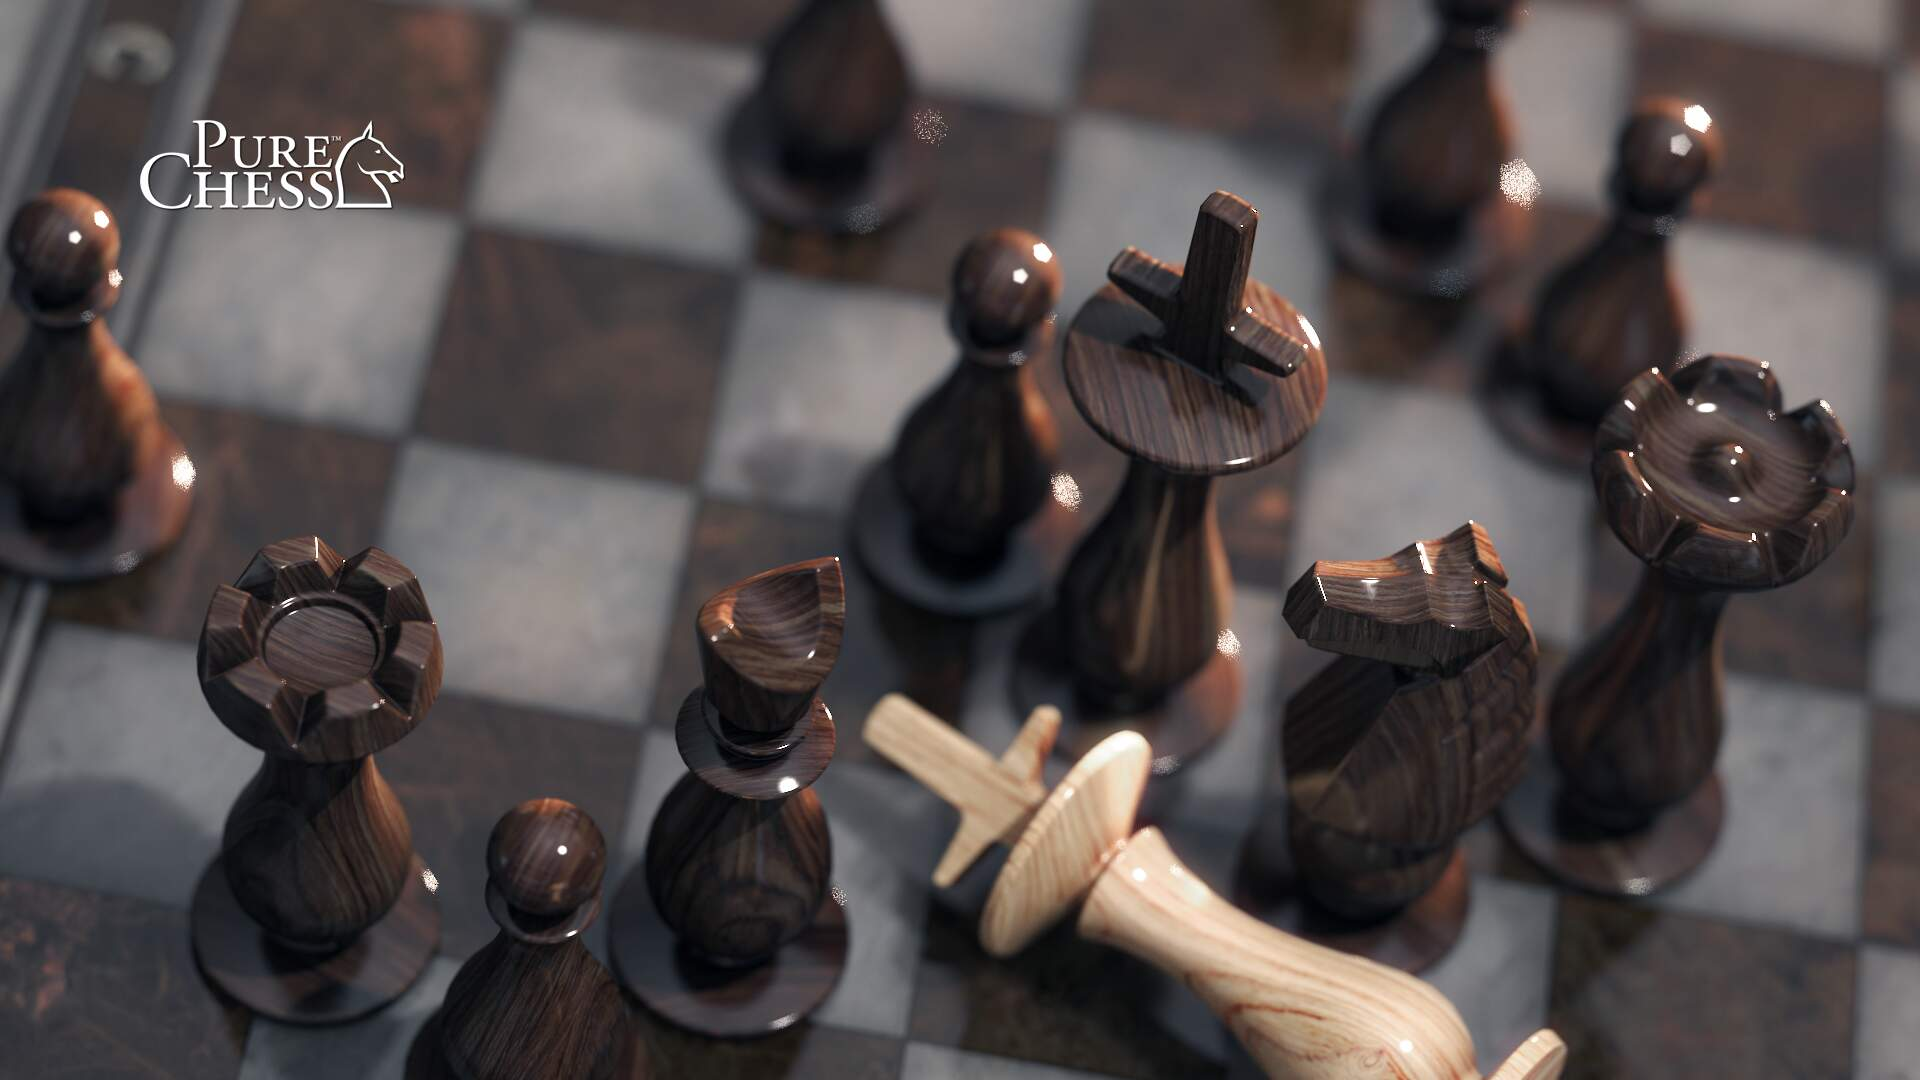 Pure Chess PS4 Review: Missing a Vital Piece